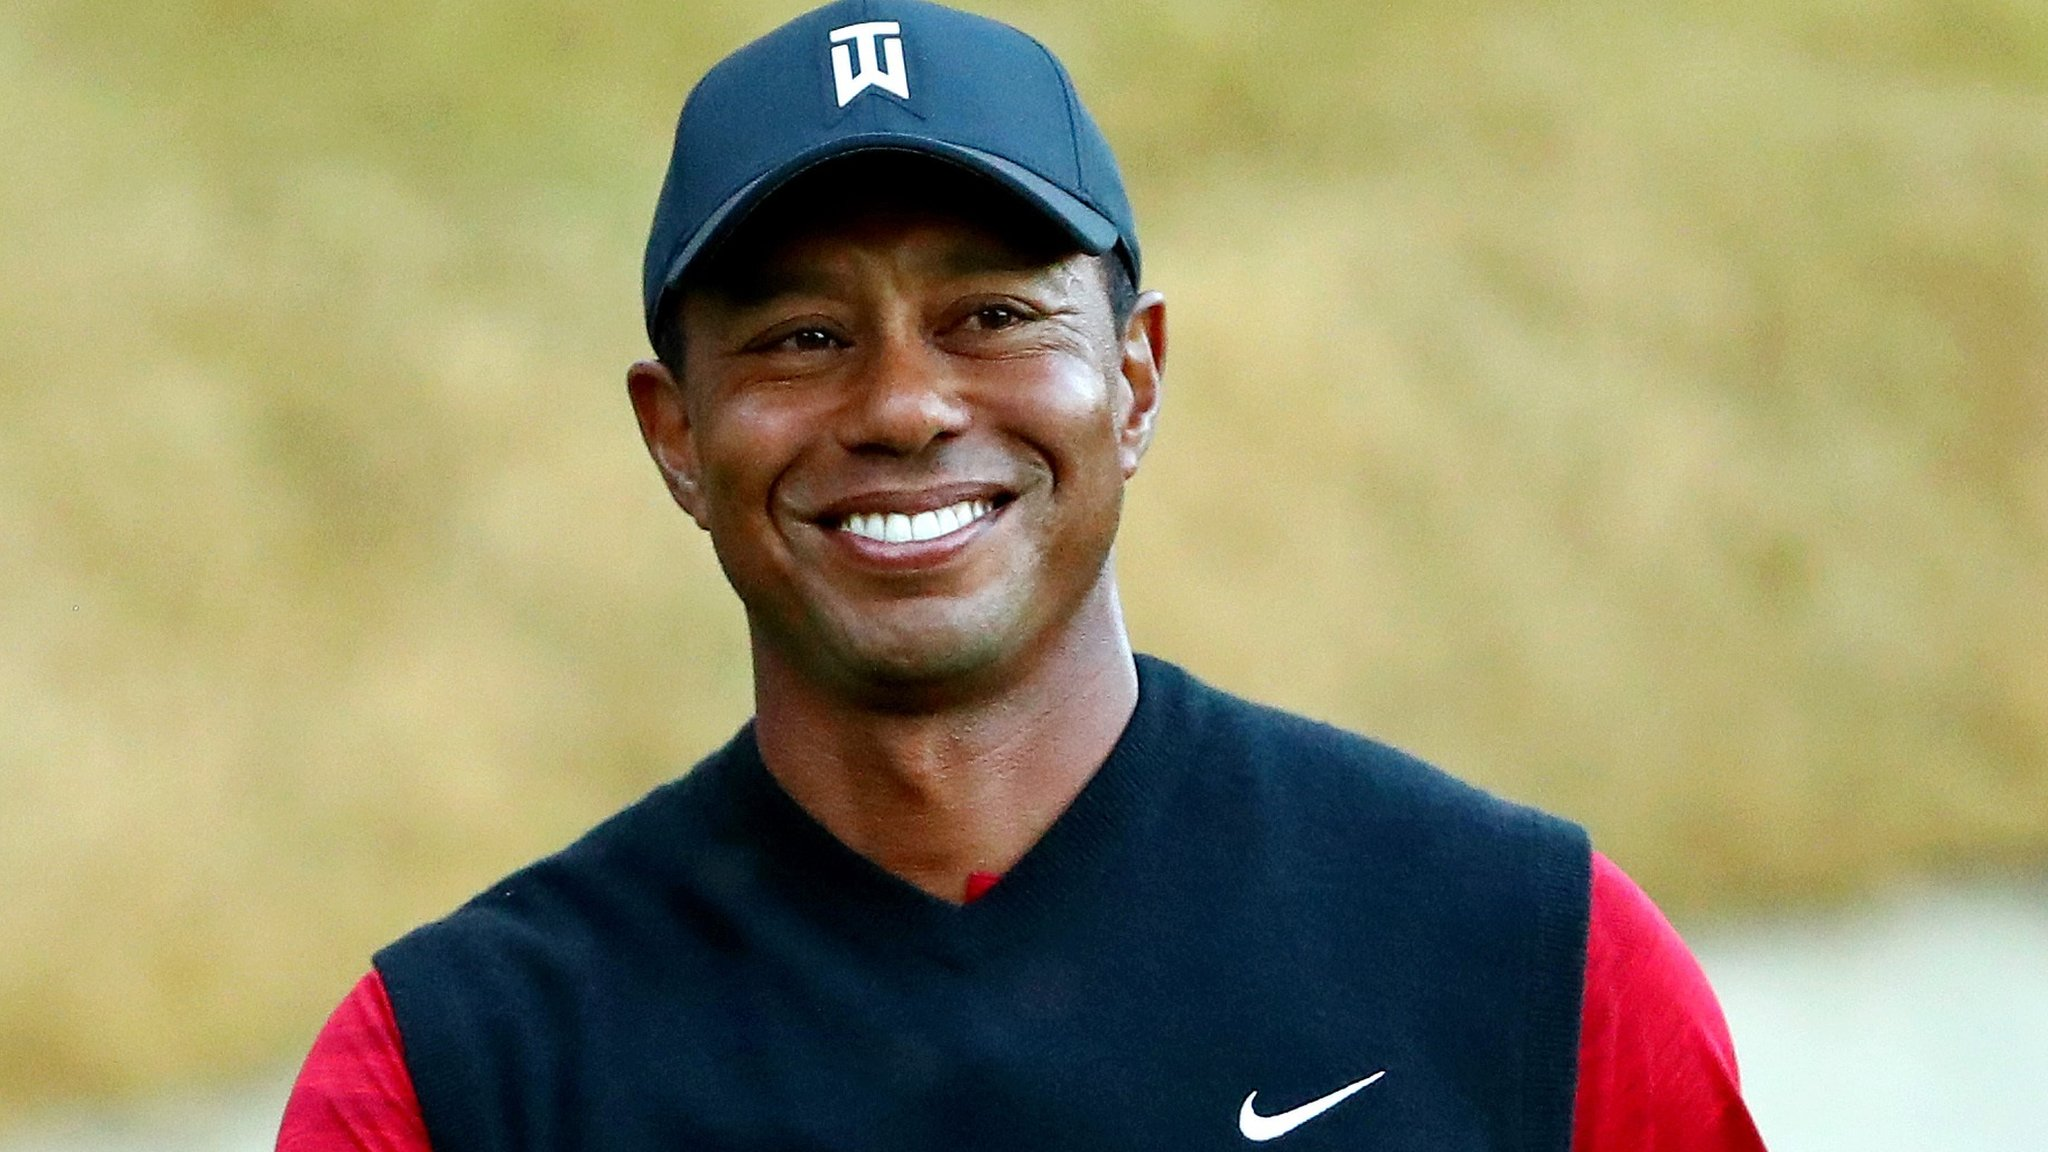 'It's great to be back' - Woods returns to glorious Torrey Pines for his 2019 opener